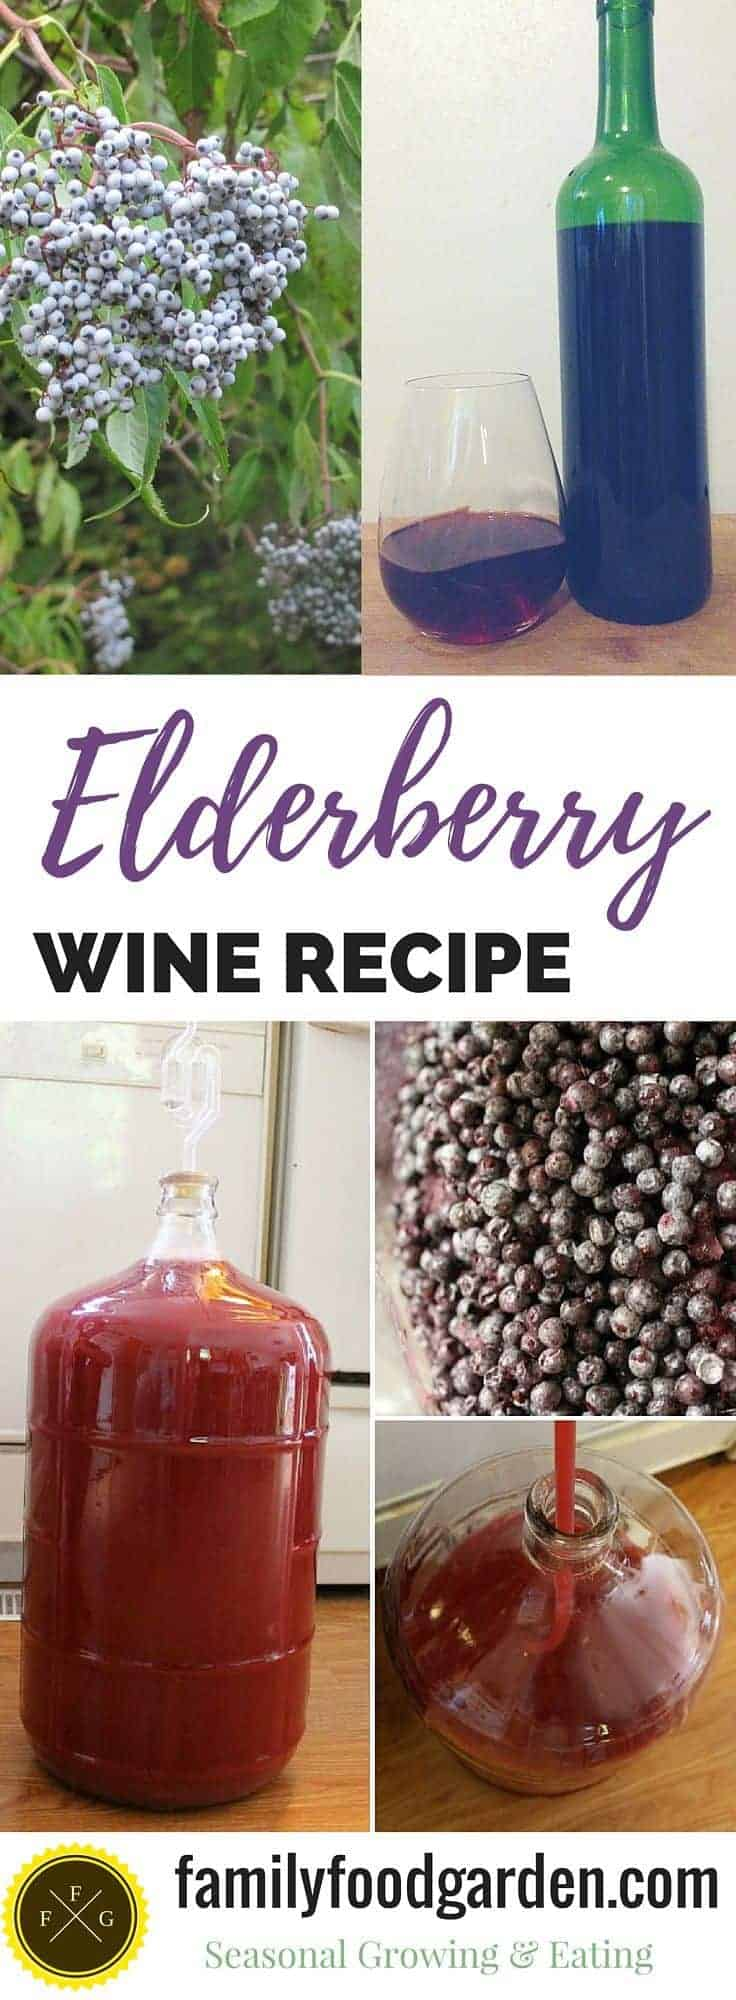 Elderberry wine recipe using fresh or dried elderberries